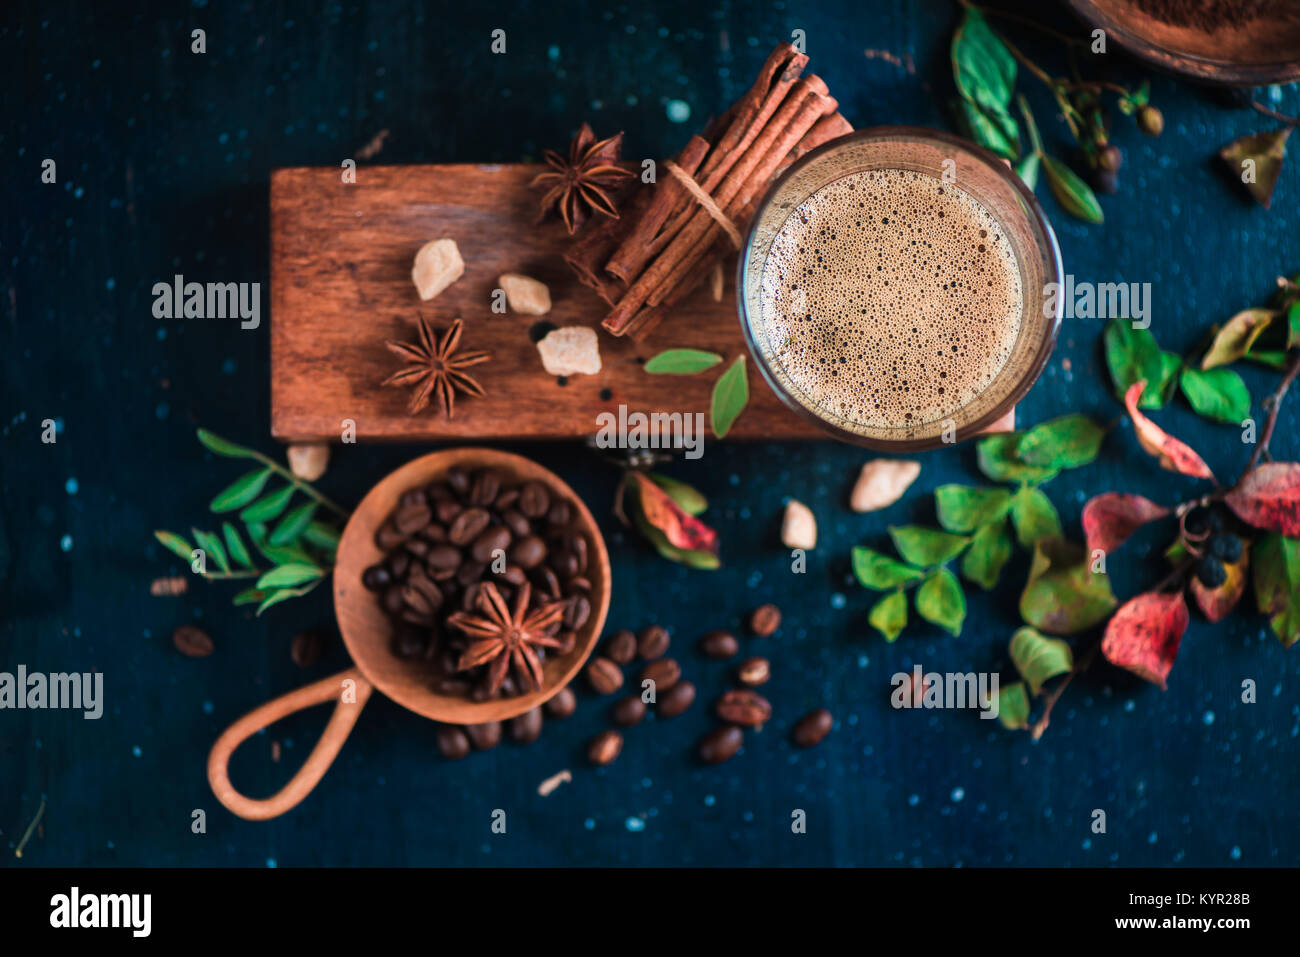 Flat lay with espresso shot with foam on a wooden box, coffee beans, arabica leaves, cinnamon and spices on dark - Stock Image